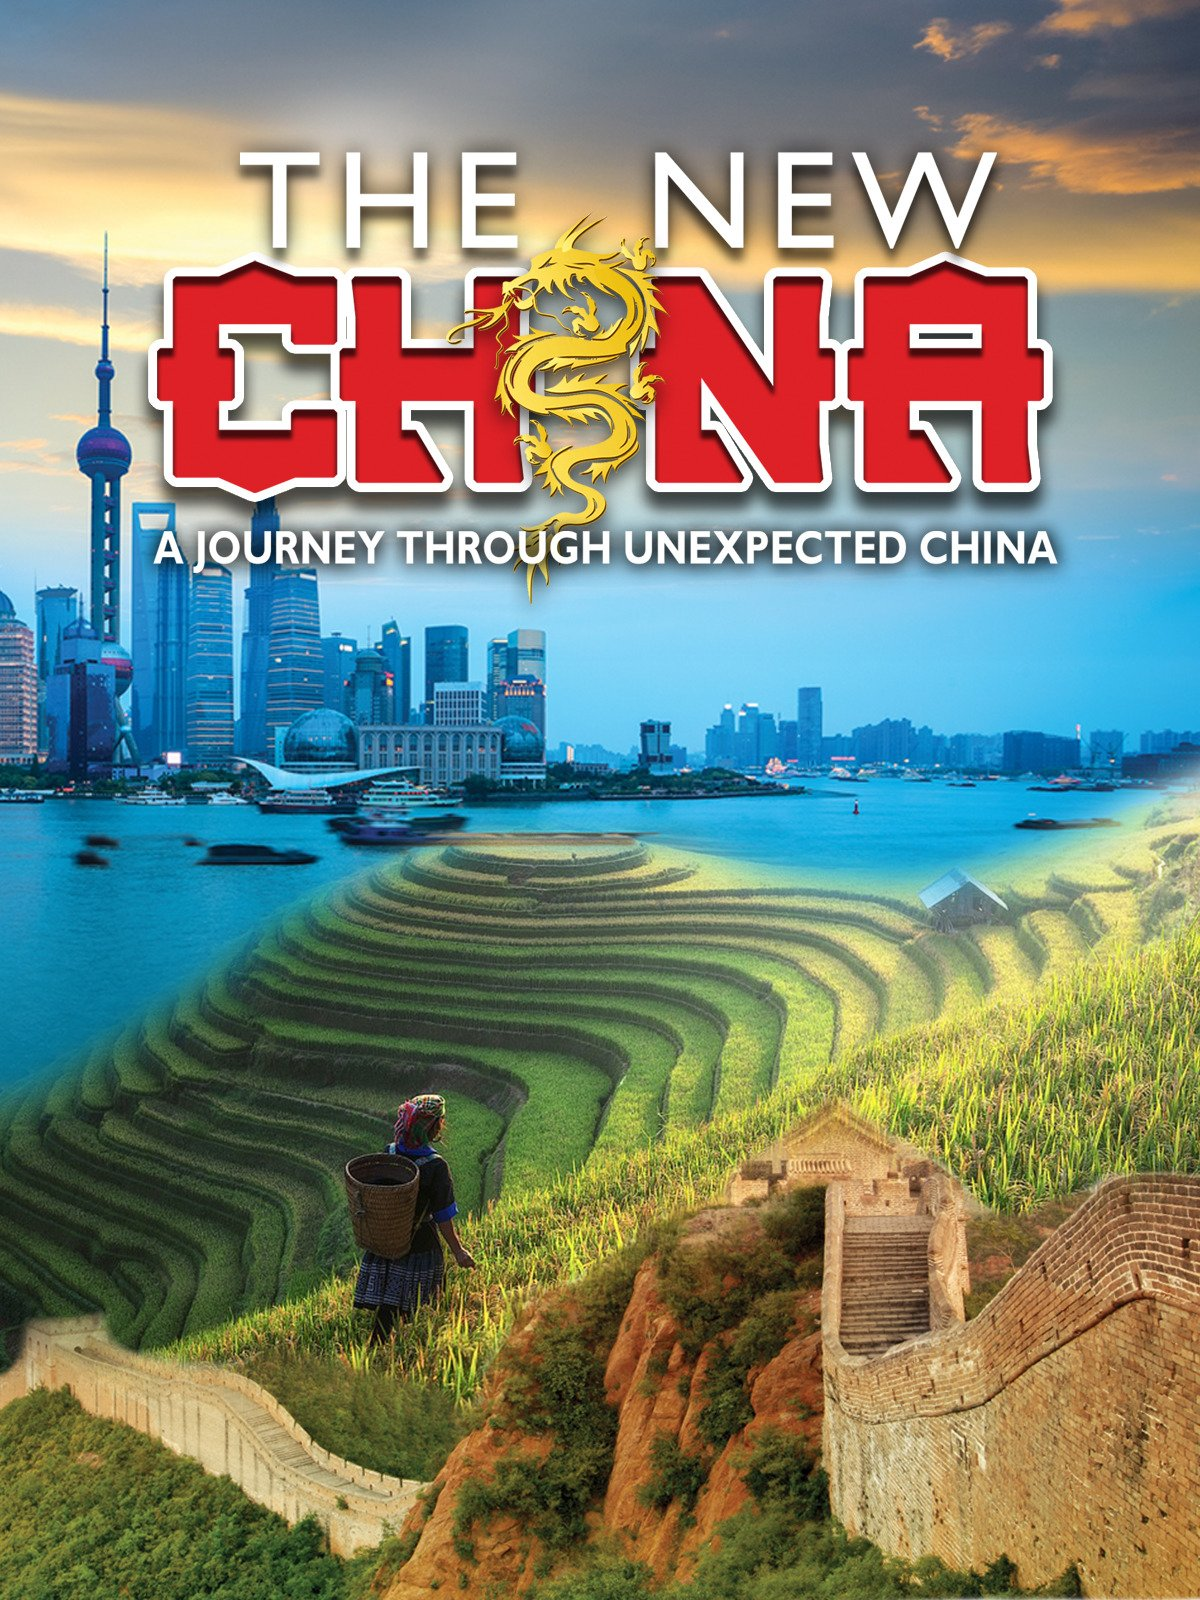 The New China